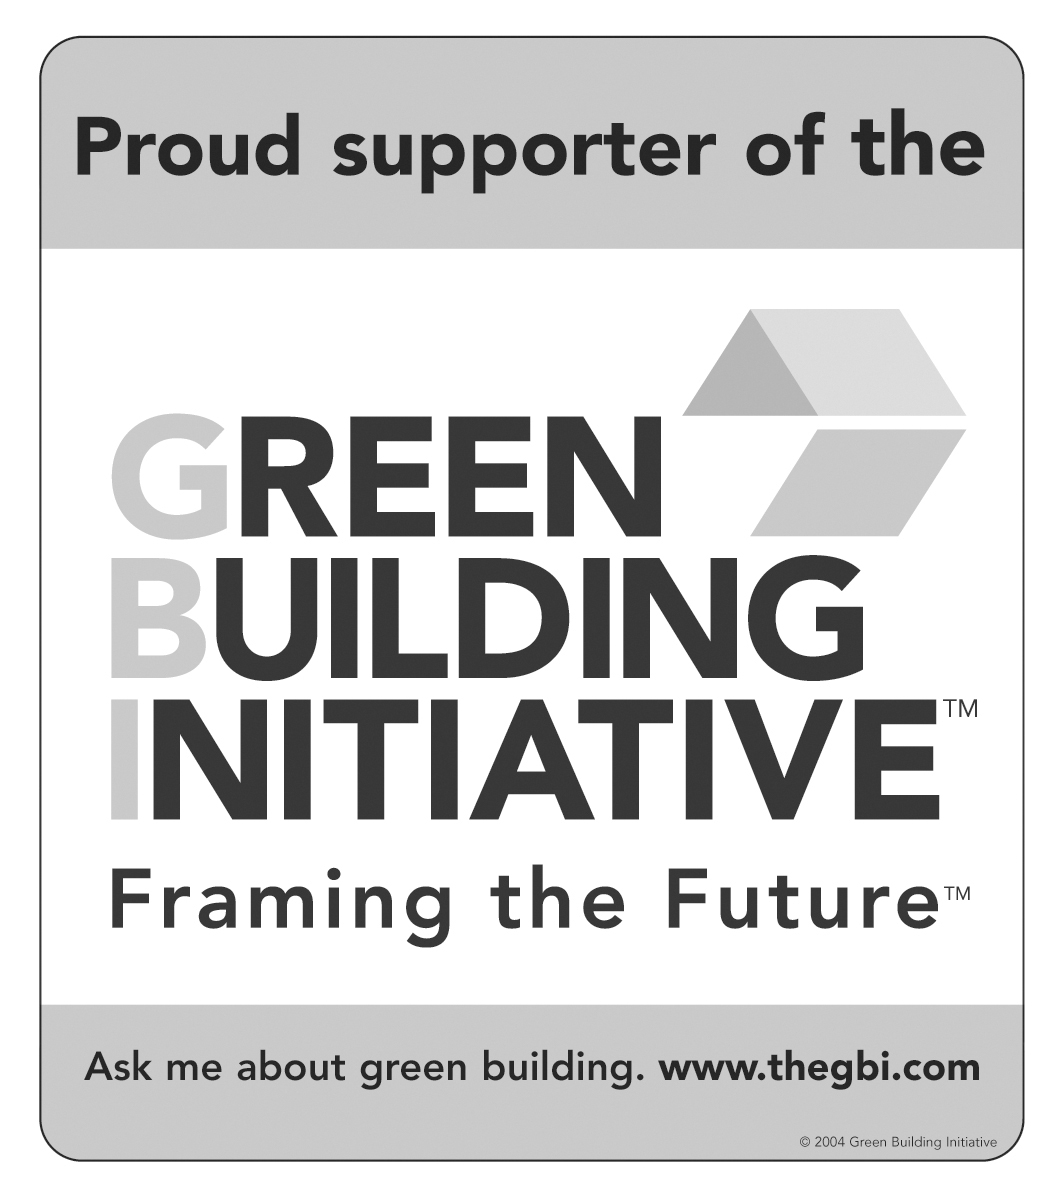 We are a member of The Green Building Initiative -- www.theGBI.com